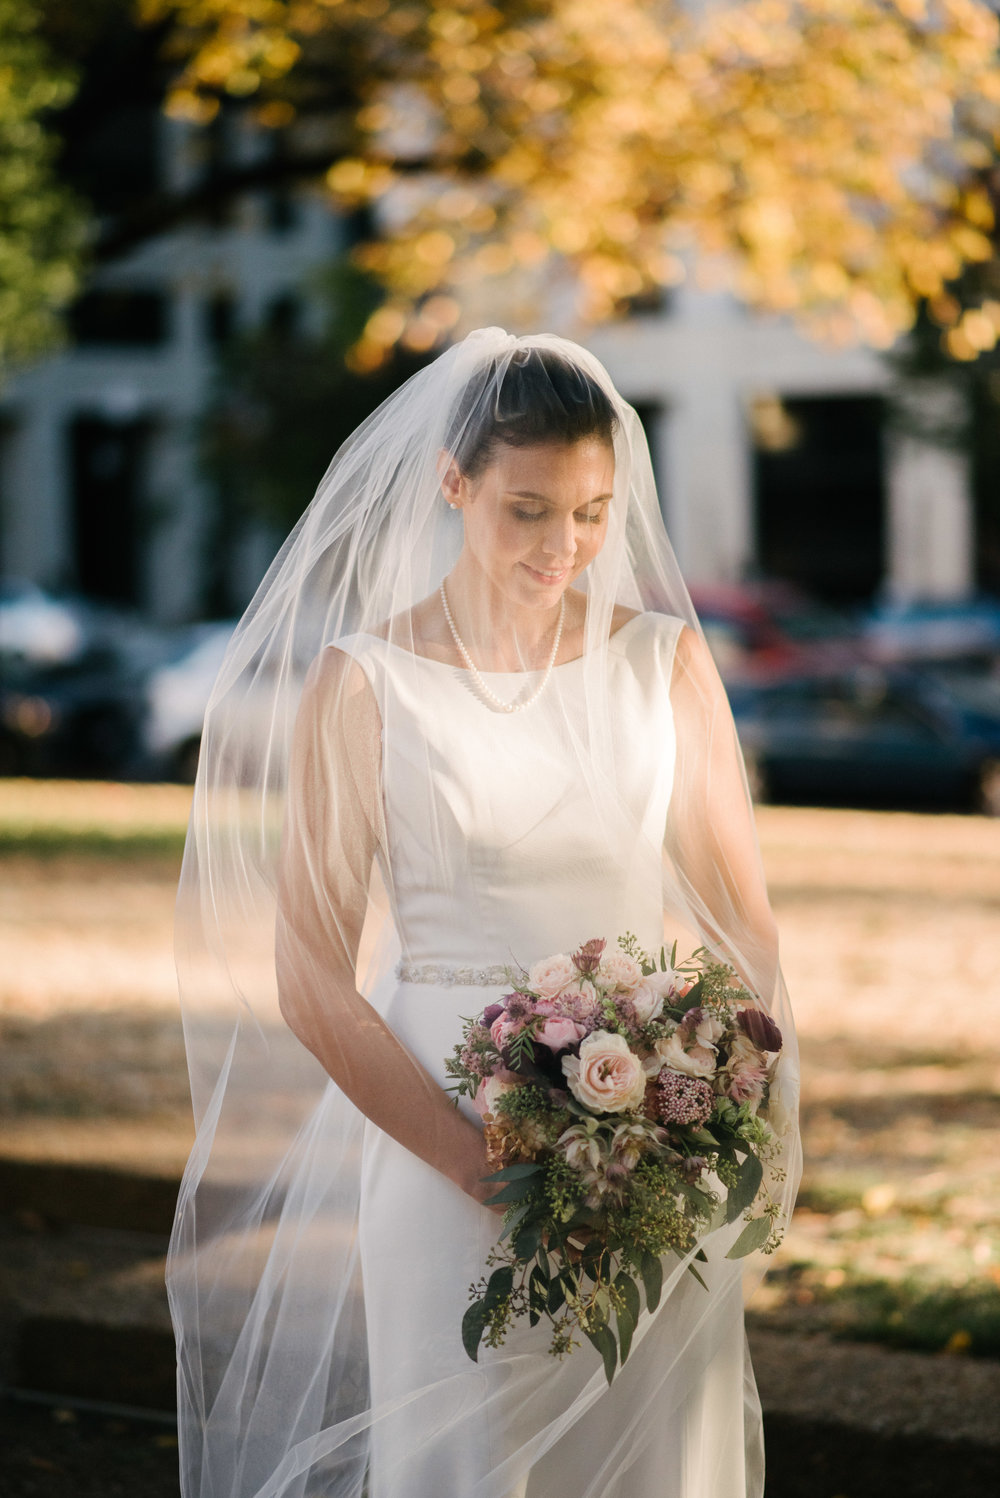 Sophie + co. wedding and event florals in Washington, DC